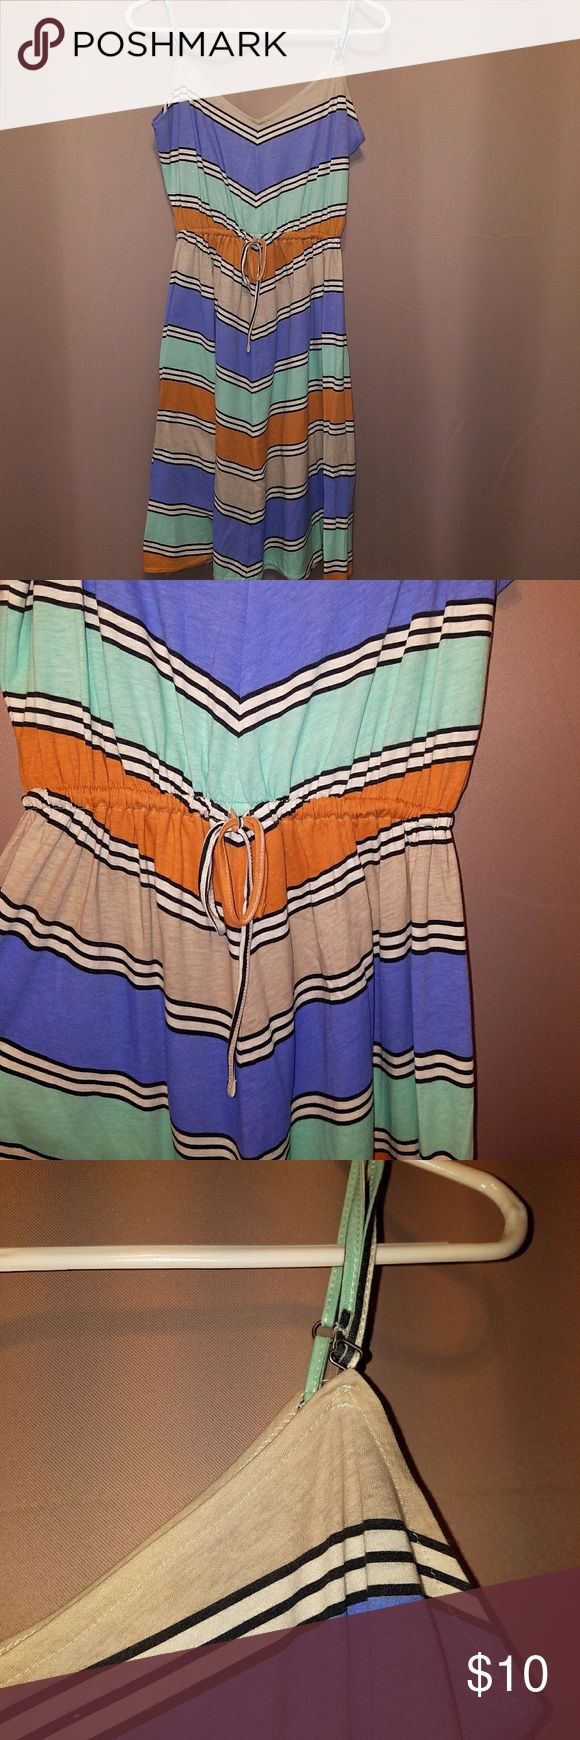 Beat the heat in style! My favorite summer activity in Chicago is the festivals!  Perfect festival dress!  Pair with comfortable sandals and eat, drink, and be merry in this flowy frock!  Chevron pattern with blue, teal, orange, black, and white.  Adjustable spaghetti straps and tie waist. O'Neill Dresses Midi